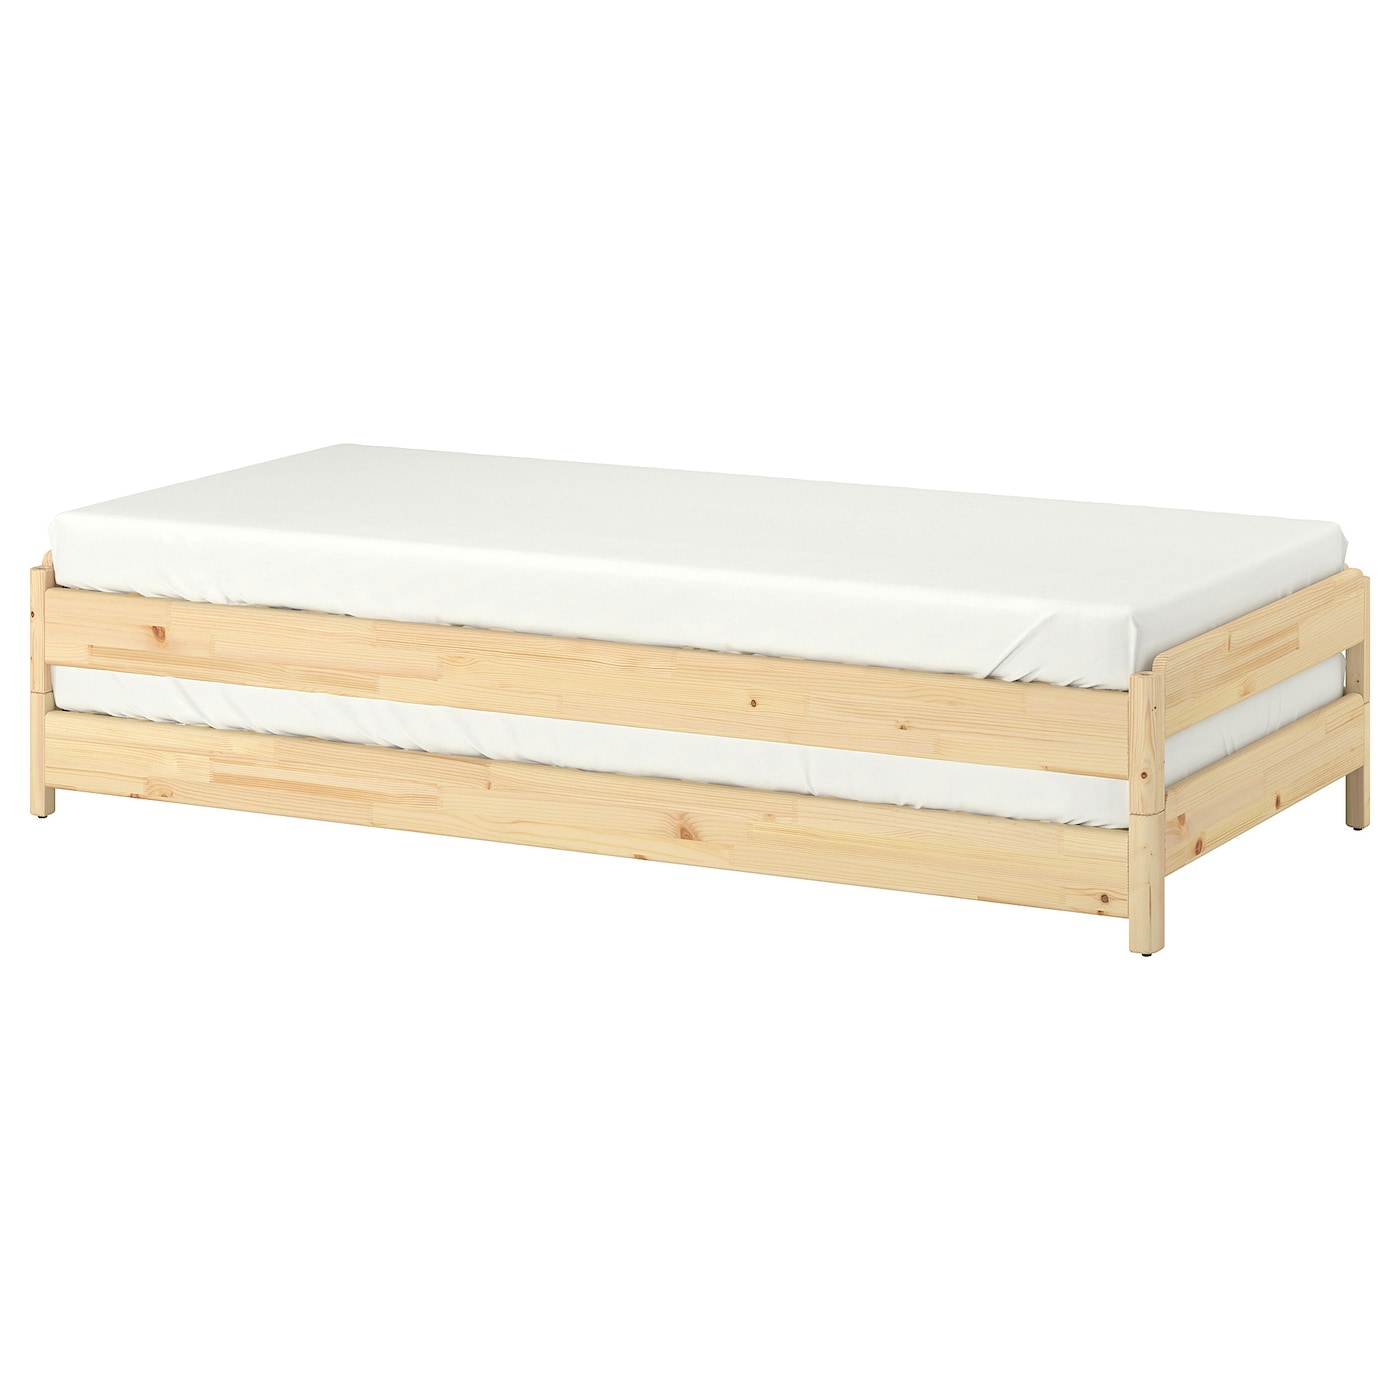 UTÅKER Stackable bed pine 80x200 cm